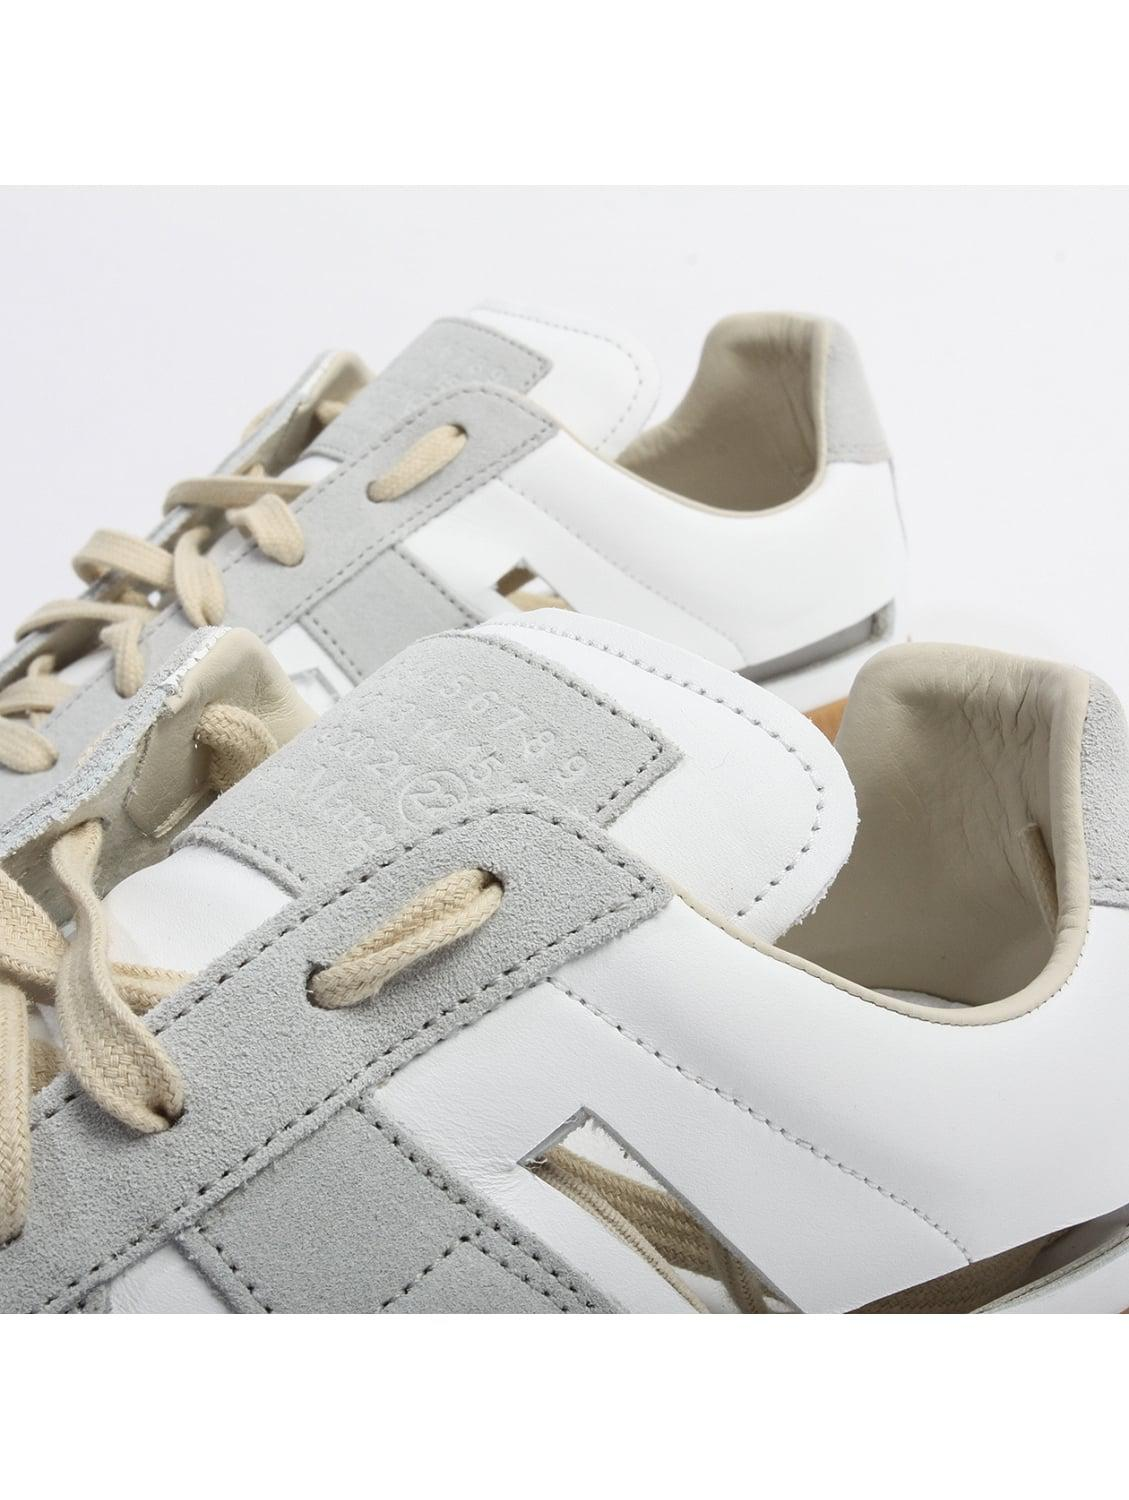 Maison Margiela Suede Cut Out Replica Sneakers White/grey